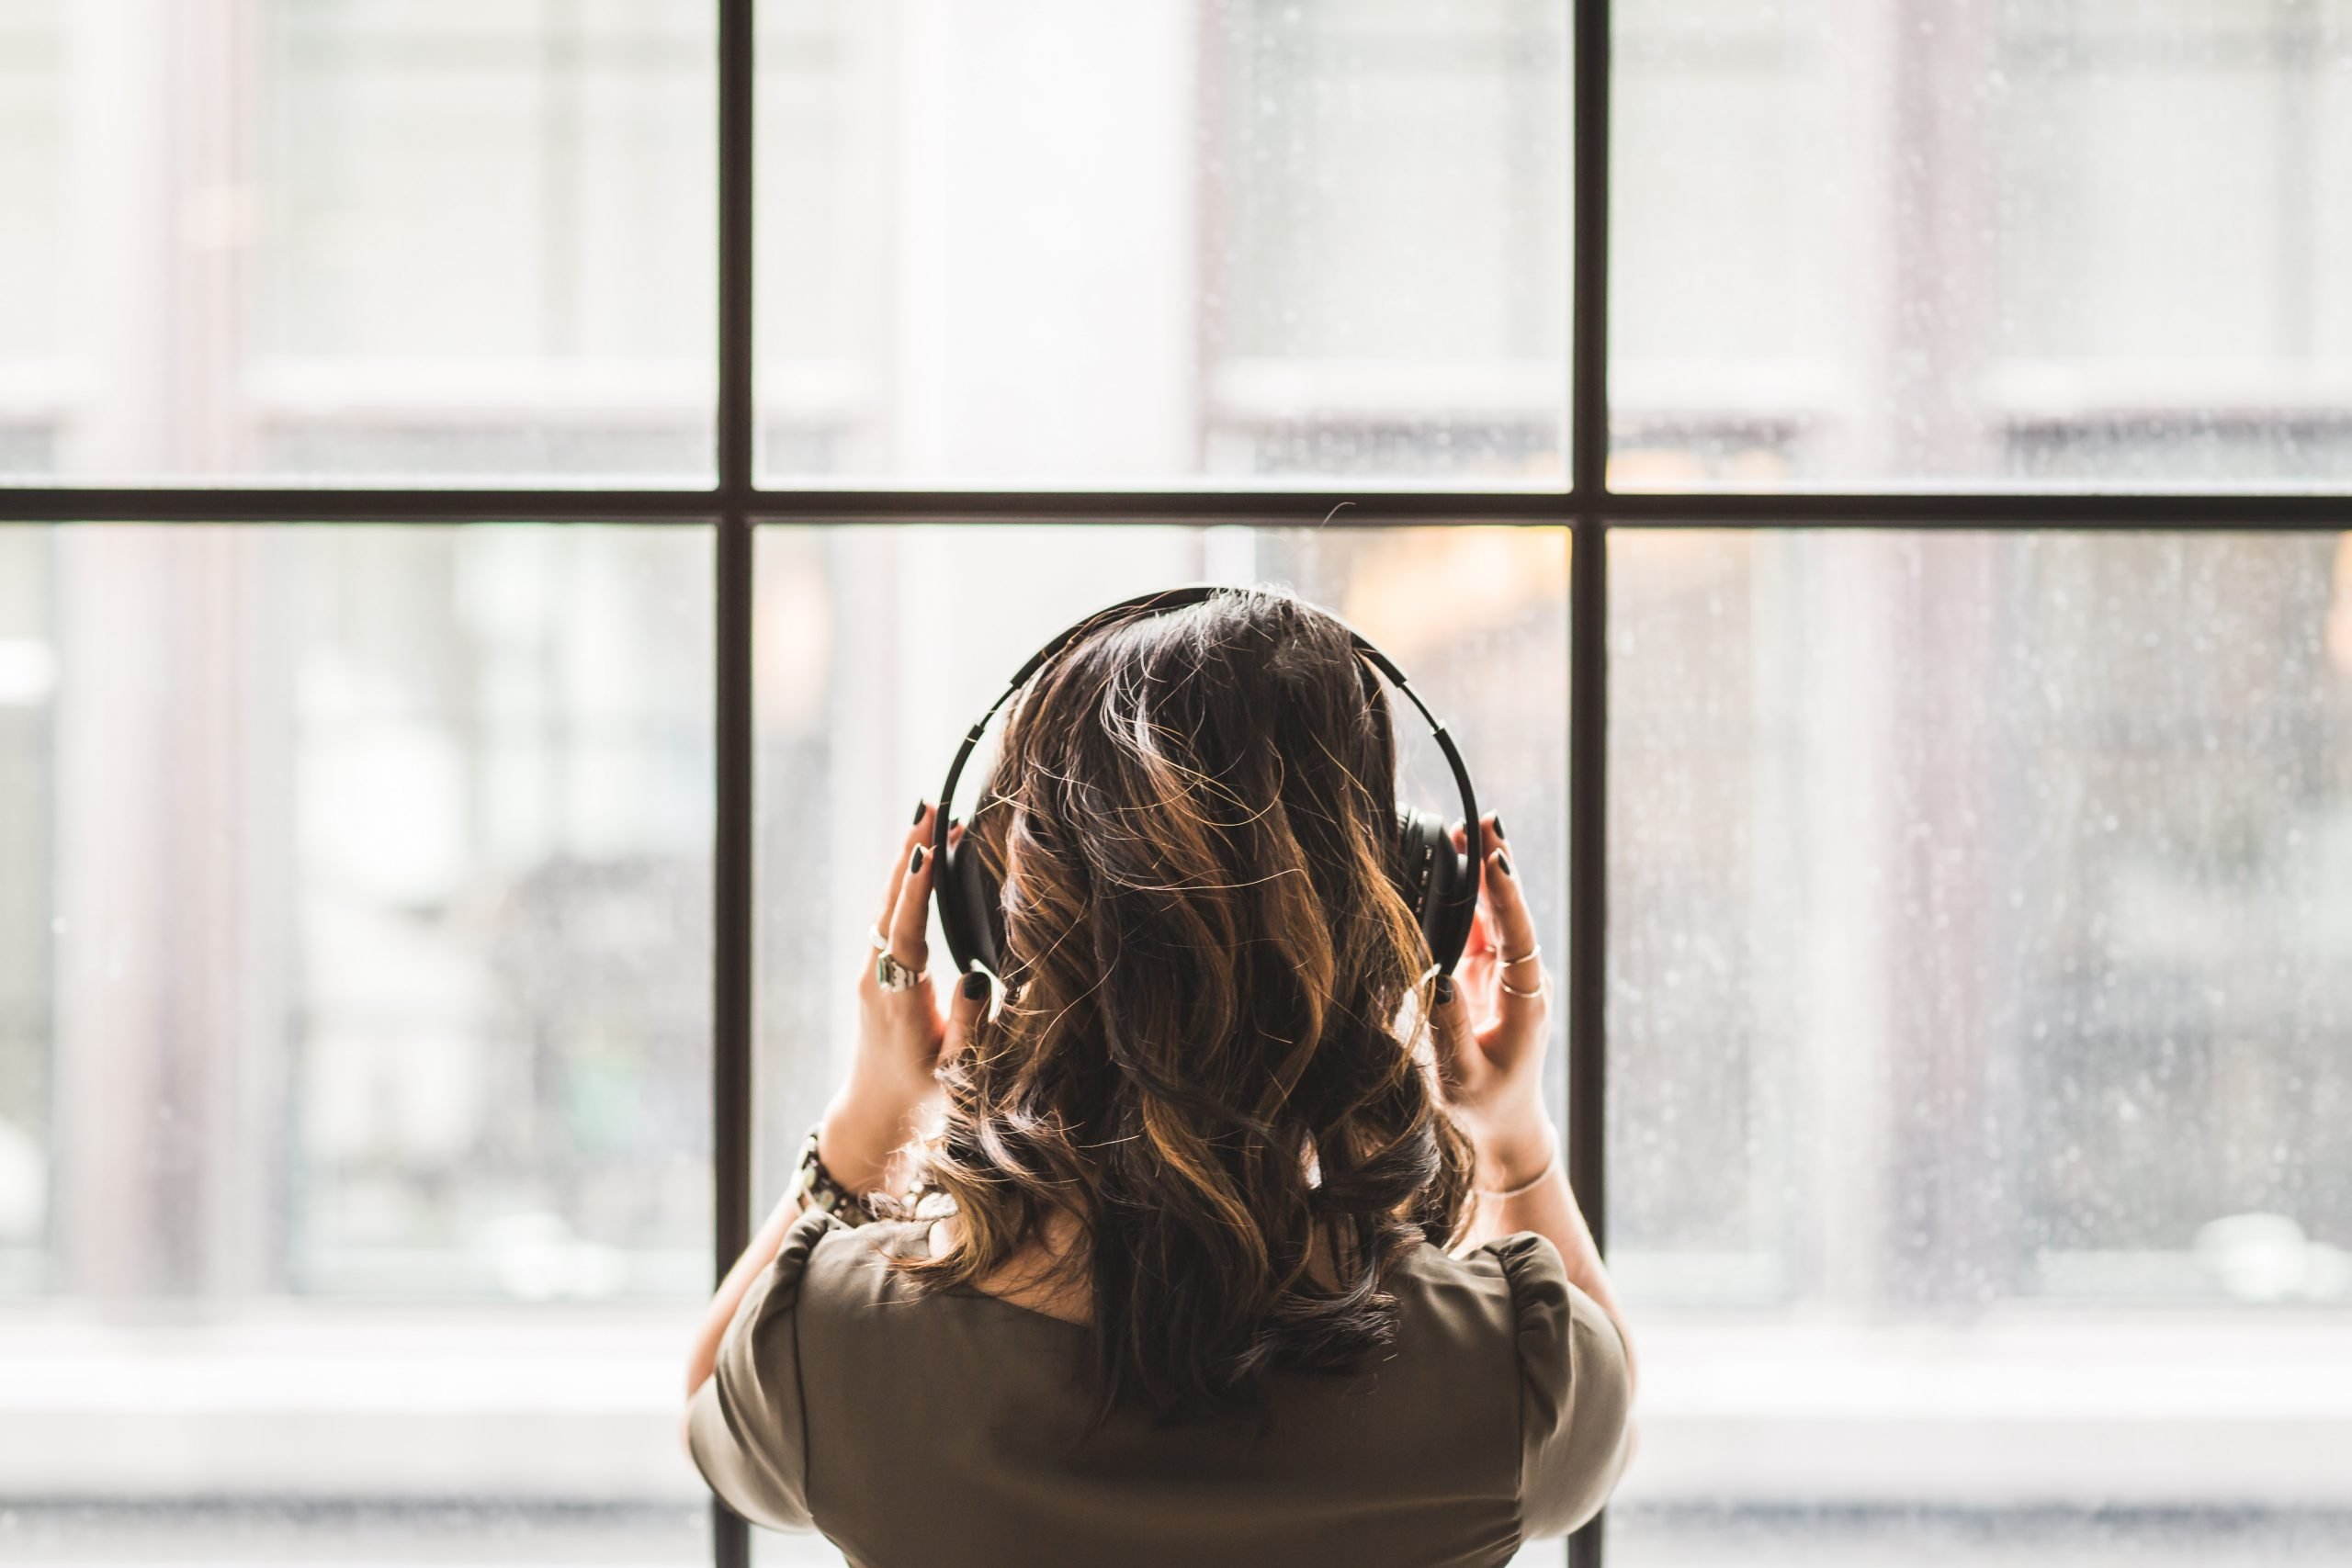 Music: Could Listening To More Make You Happier and Smarter?